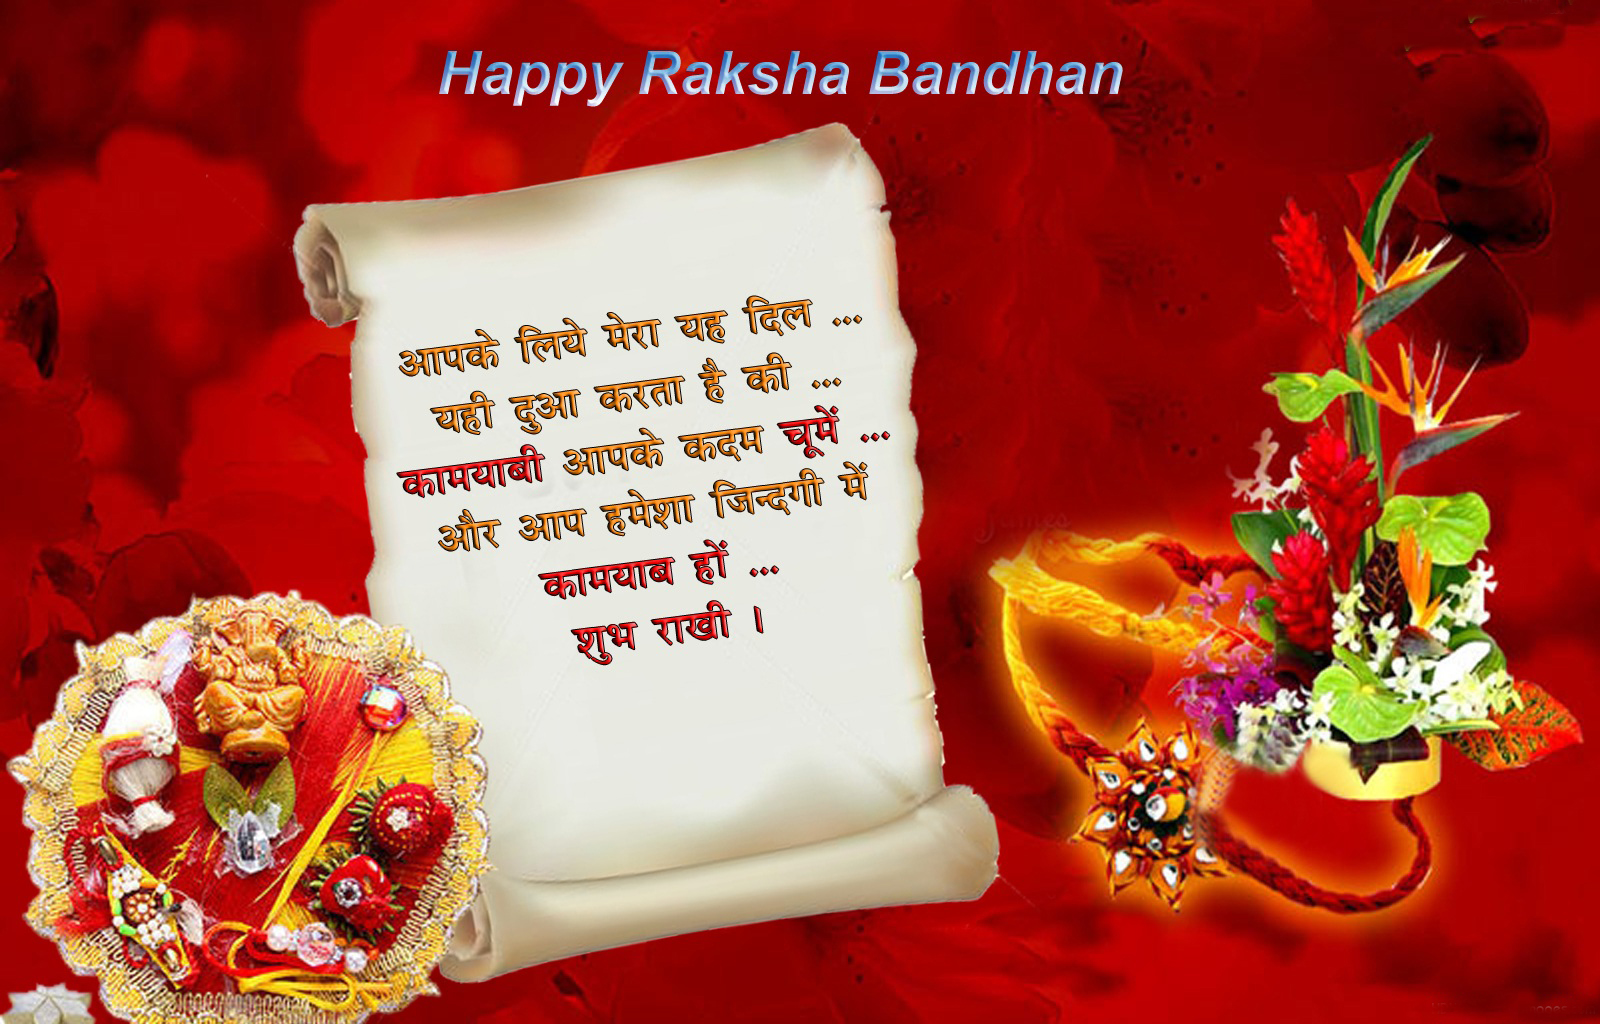 Happy raksha bandhan 2017 wishes messages and quotes happy raksha bandhan wishes kristyandbryce Image collections